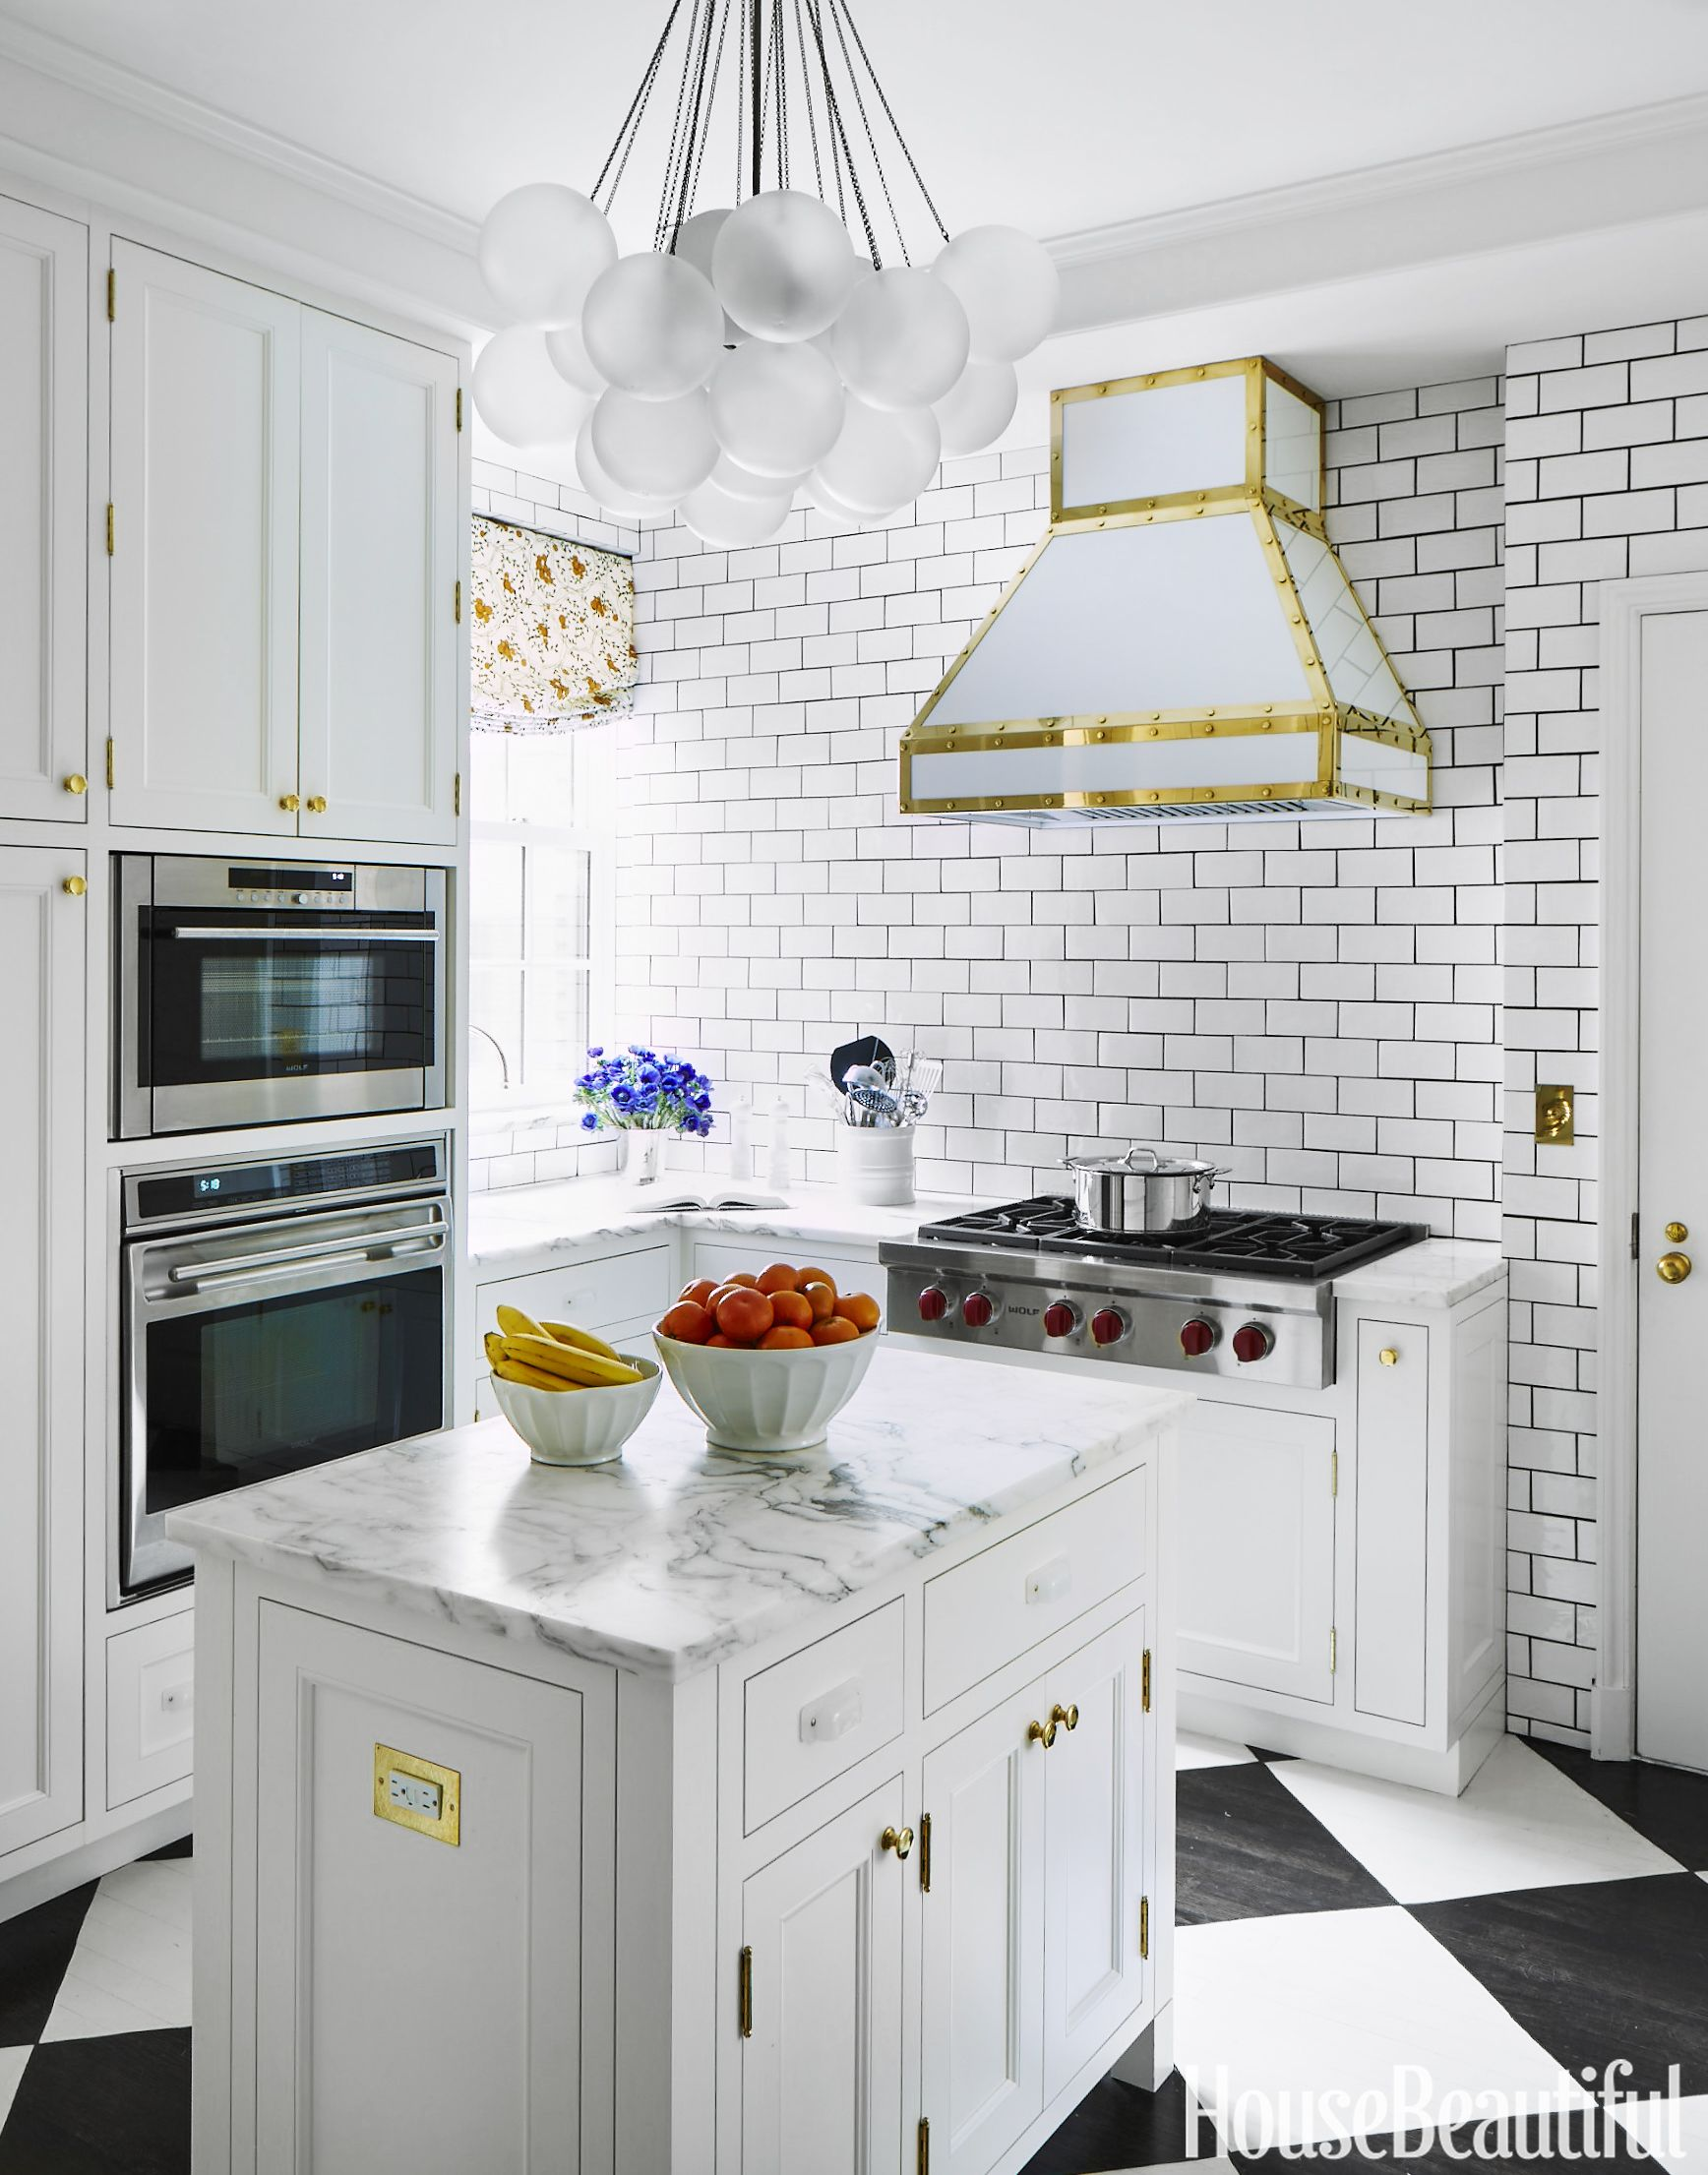 50 best small kitchen design ideas - decor solutions for small kitchens